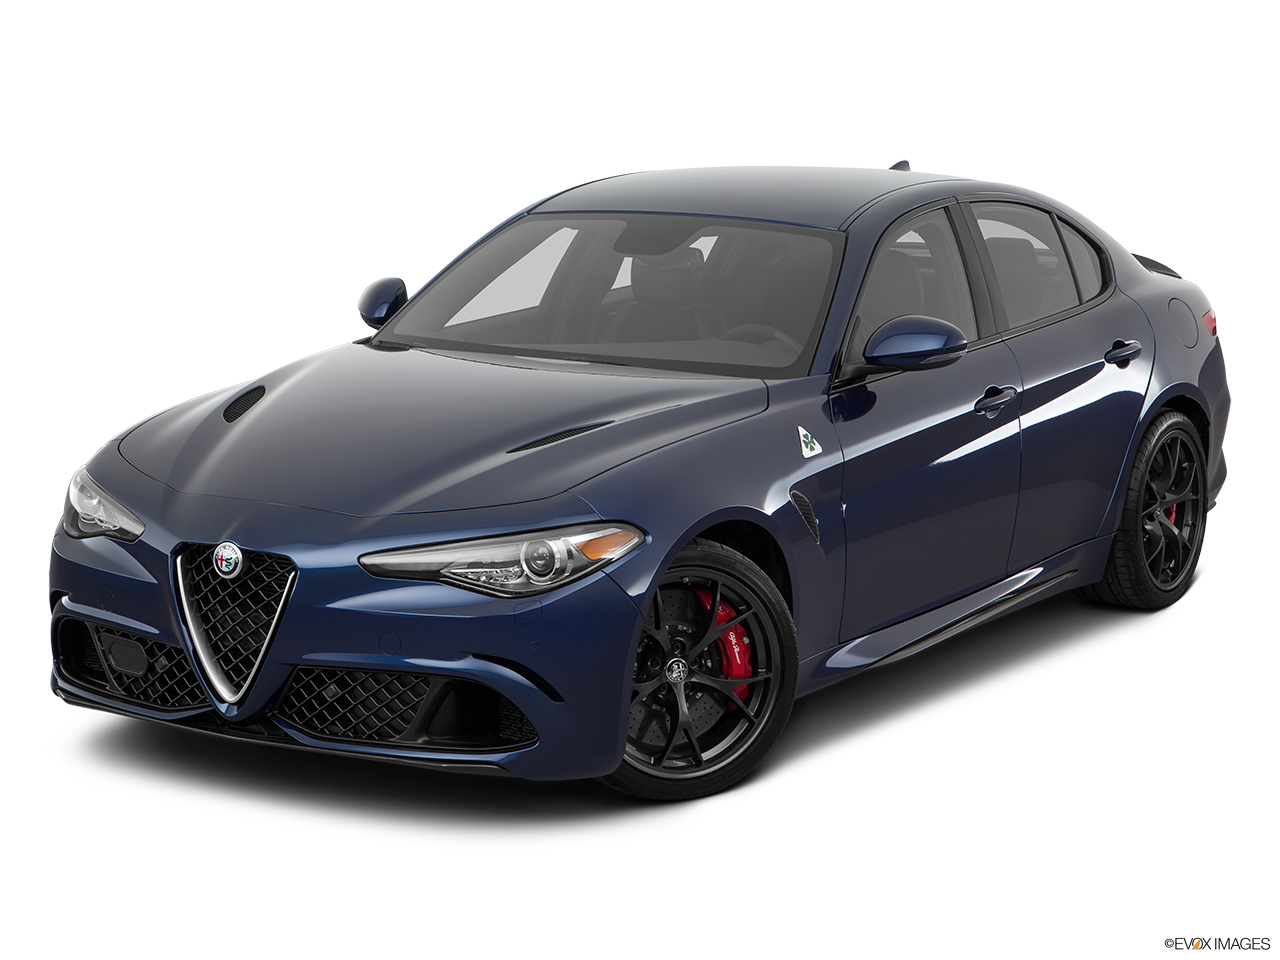 2017 alfa romeo giulia prices in uae gulf specs reviews for dubai abu dhabi and sharjah. Black Bedroom Furniture Sets. Home Design Ideas